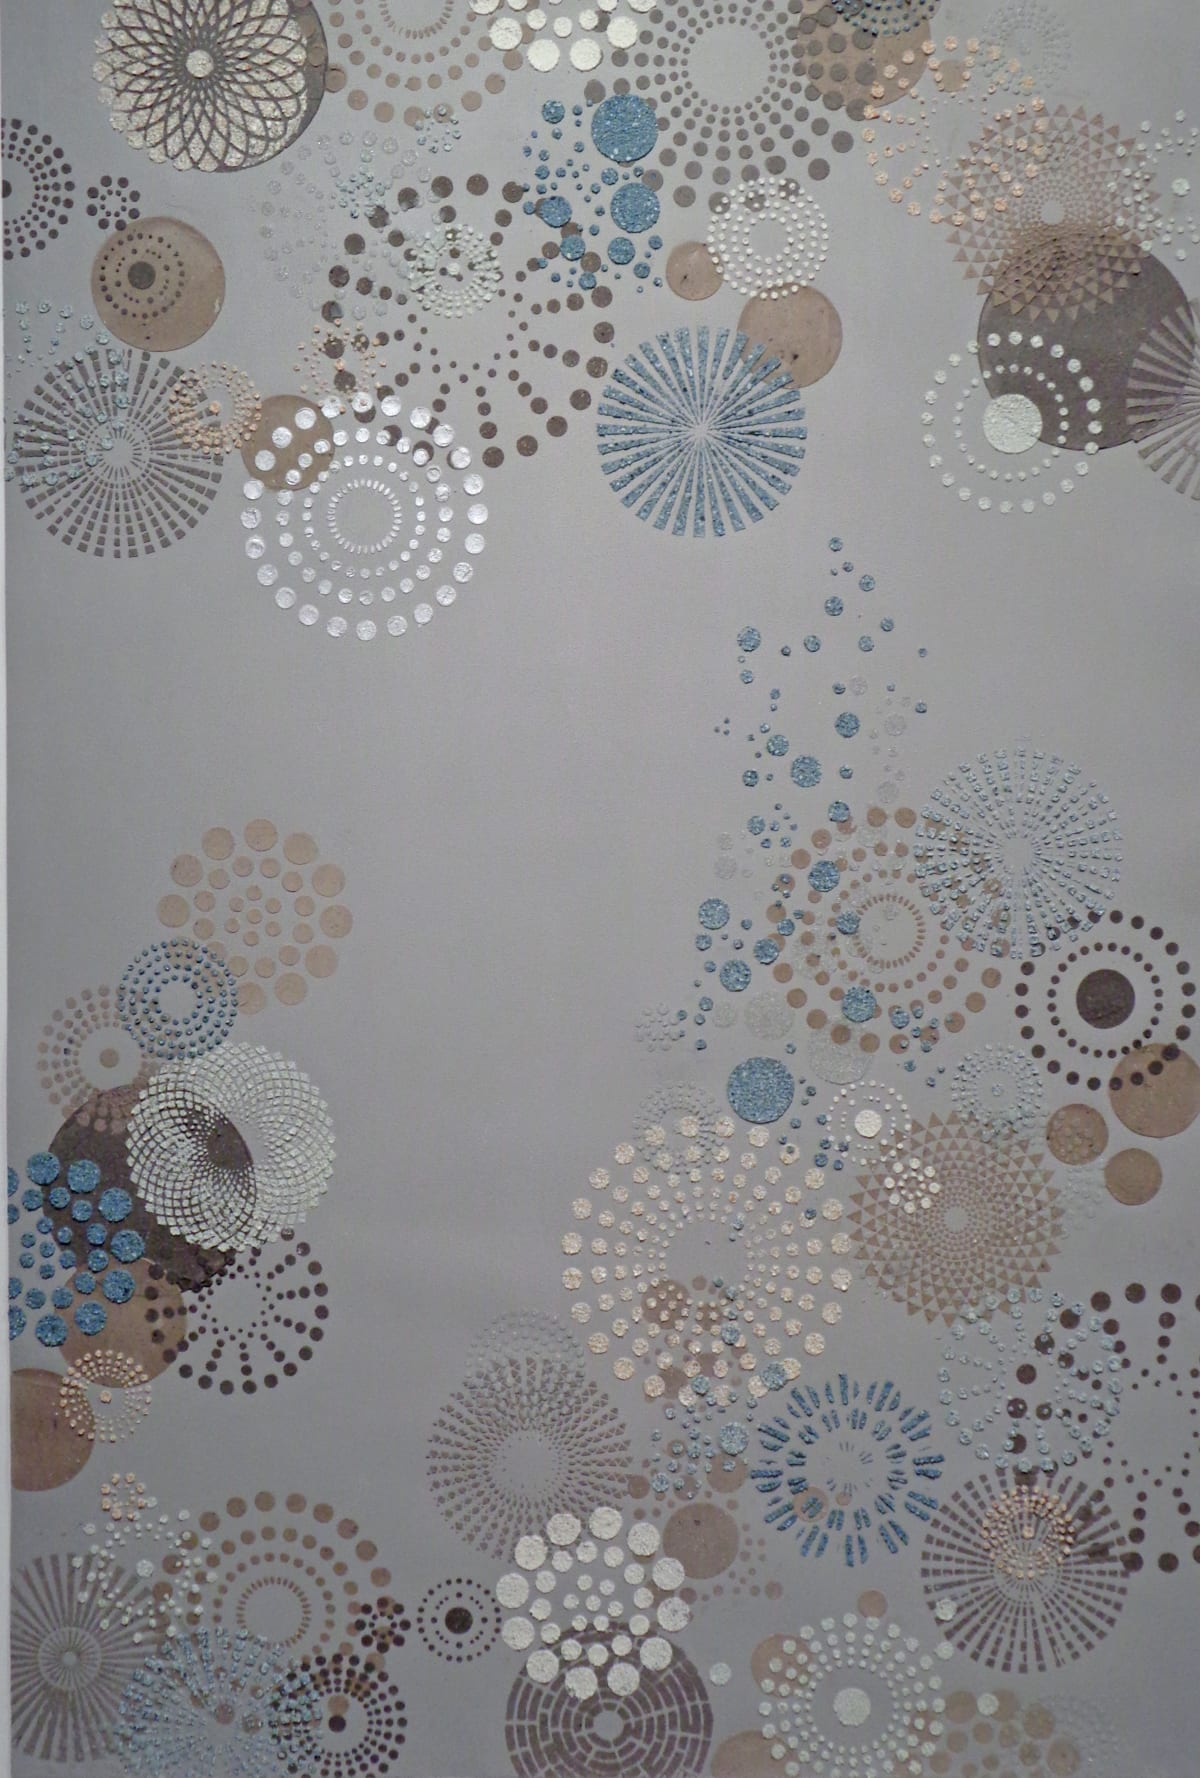 Eleanor White, Grey Multi Dot (large), 2018